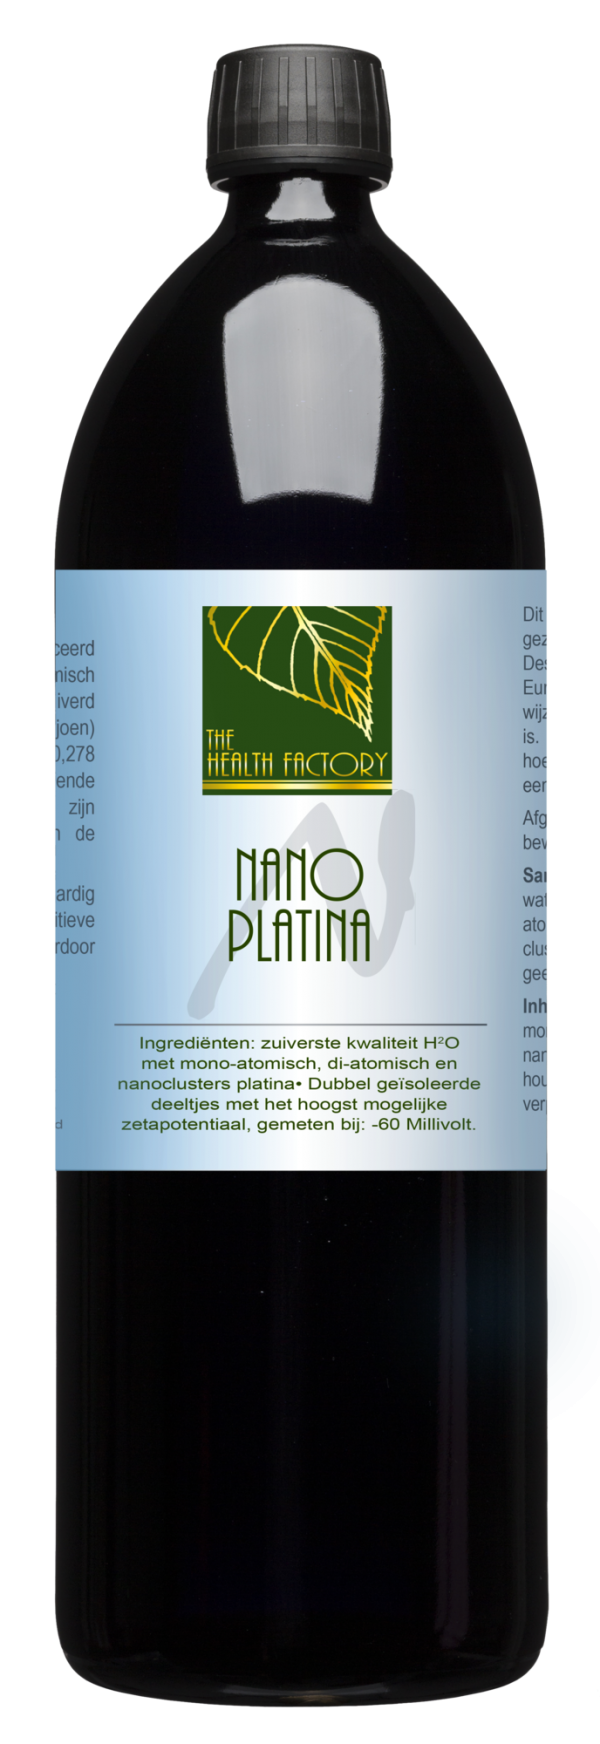 Nano Mineraal Water (Colloïdaal platina) - 1 liter - The Health Facto